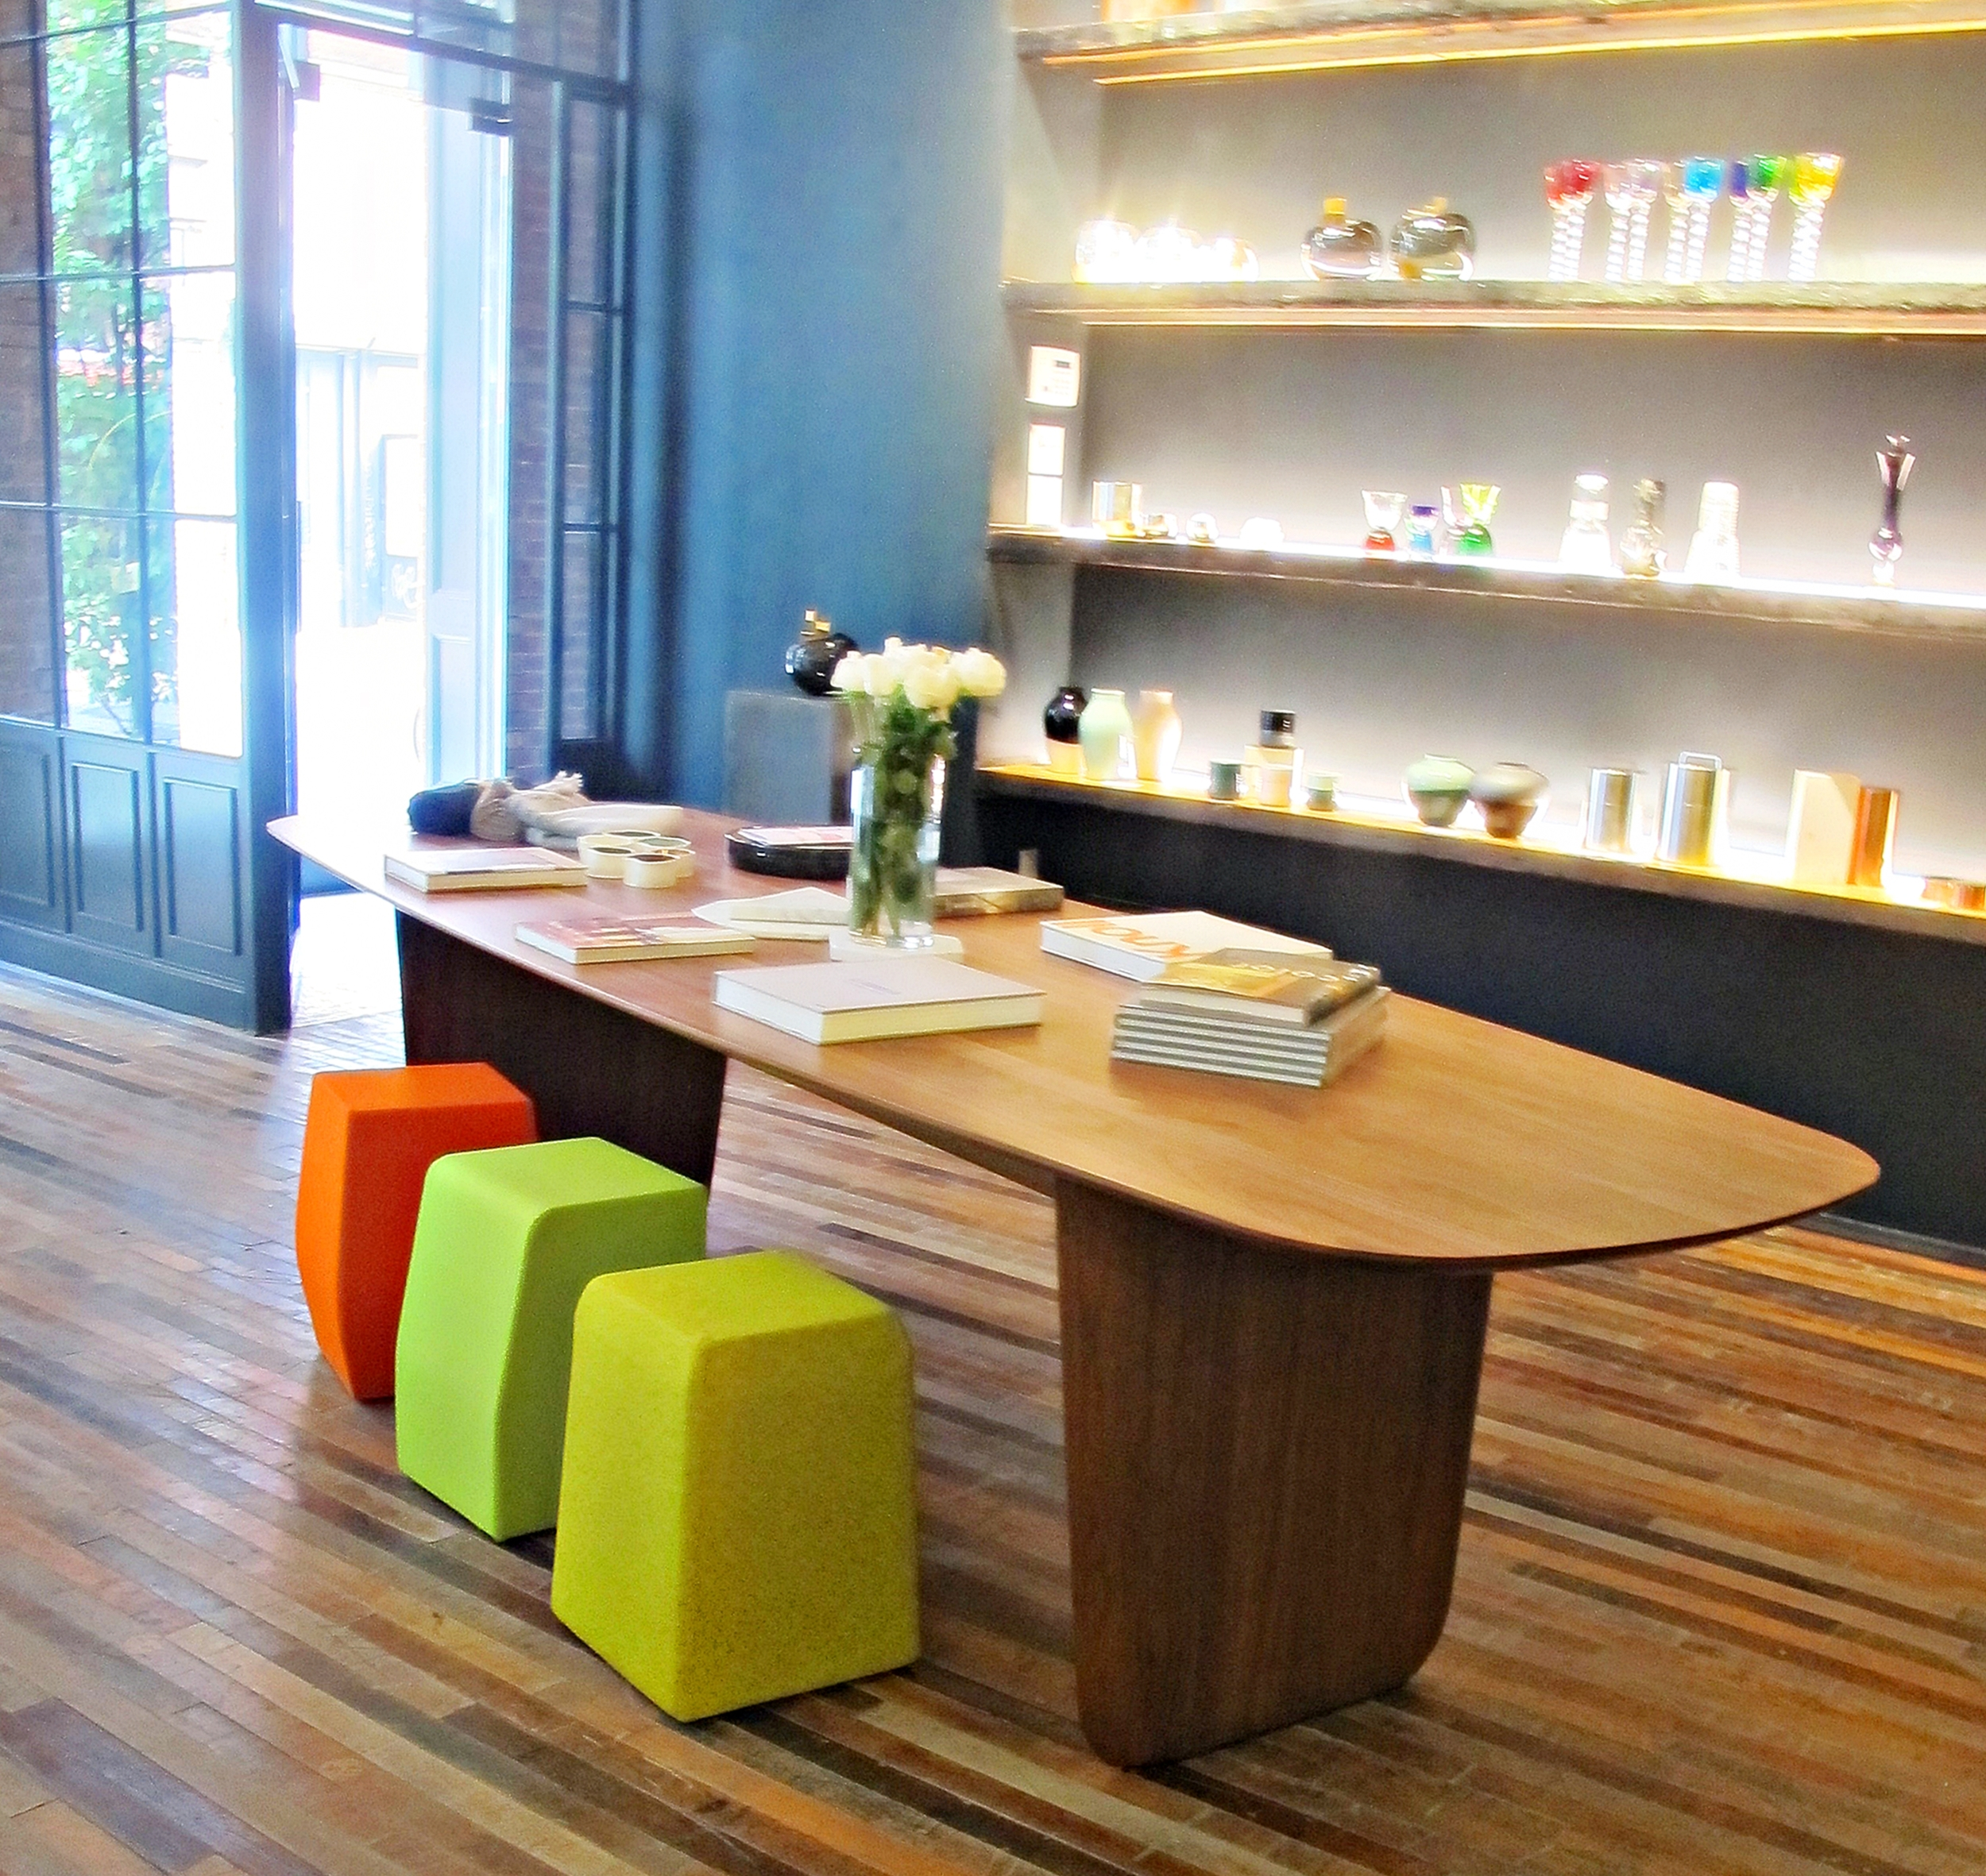 The gorgeous solid oak table and the colored stools are by Eric Jourdan for Domeau & Pérès.